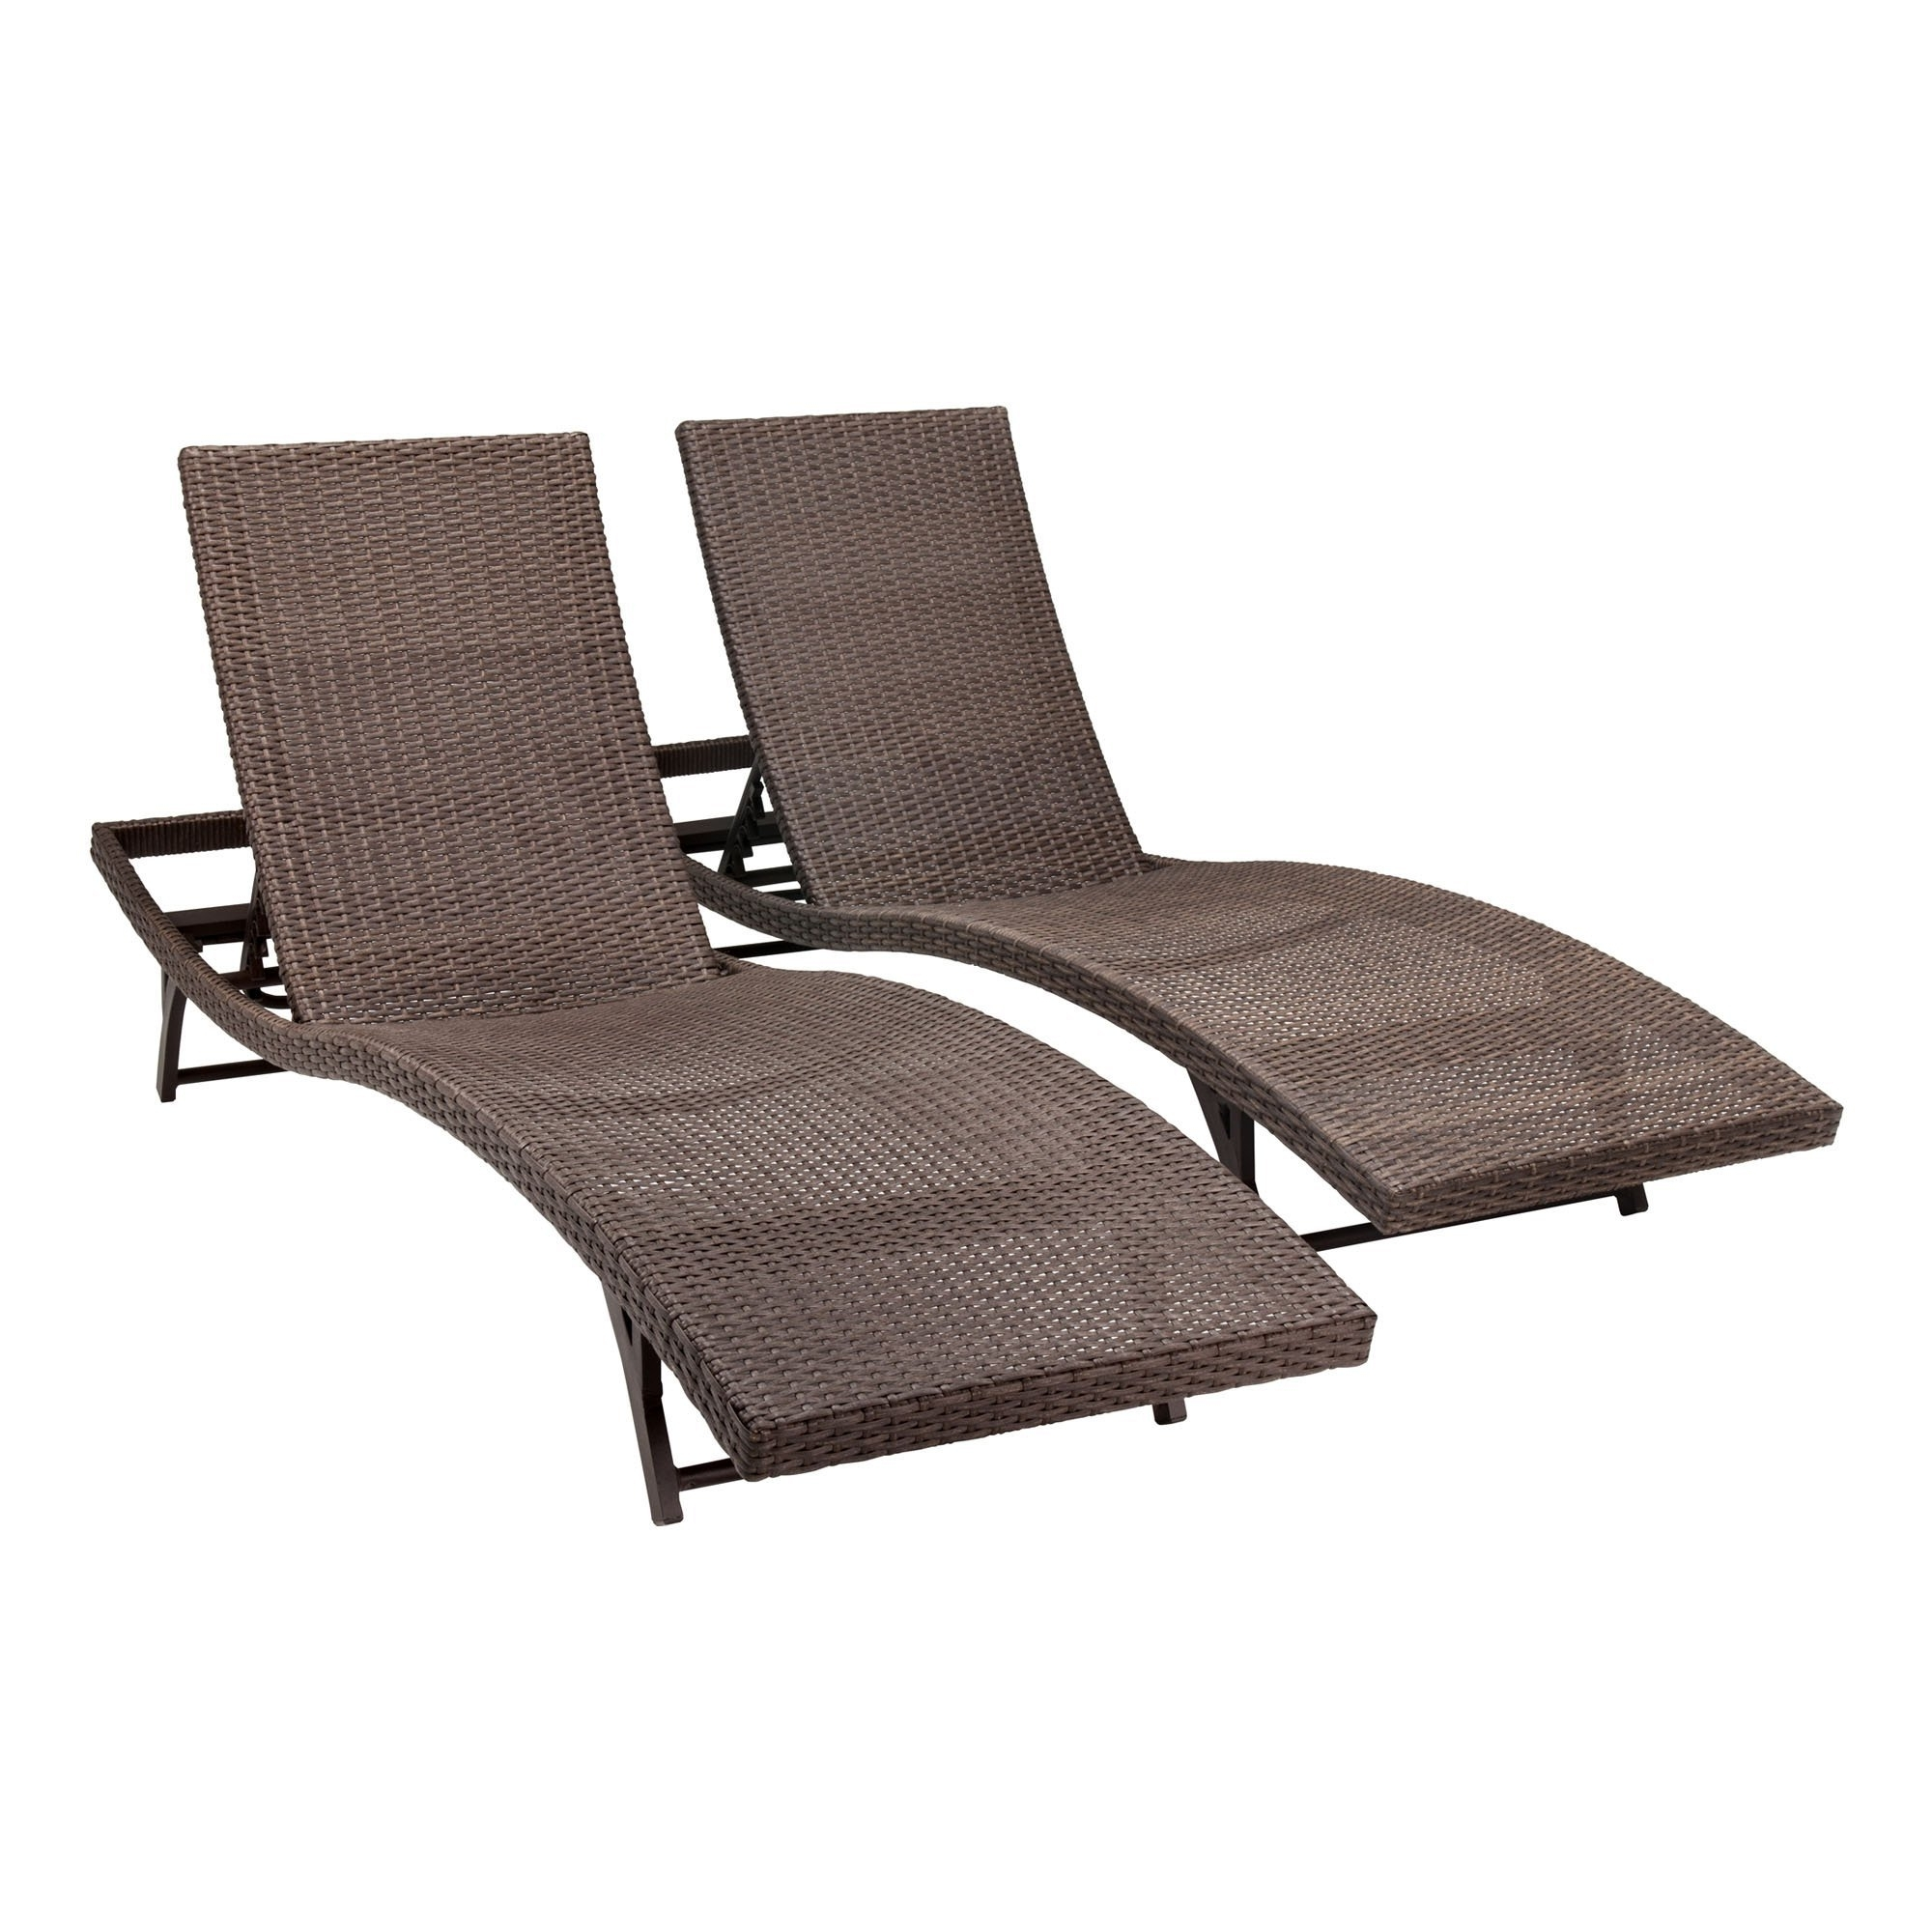 Well Liked Chaise Lounge Chairs For Backyard With Regard To Outdoor : Jelly Lounge Chair Chaise Lounge Sofa Chaise Lounge (View 5 of 15)